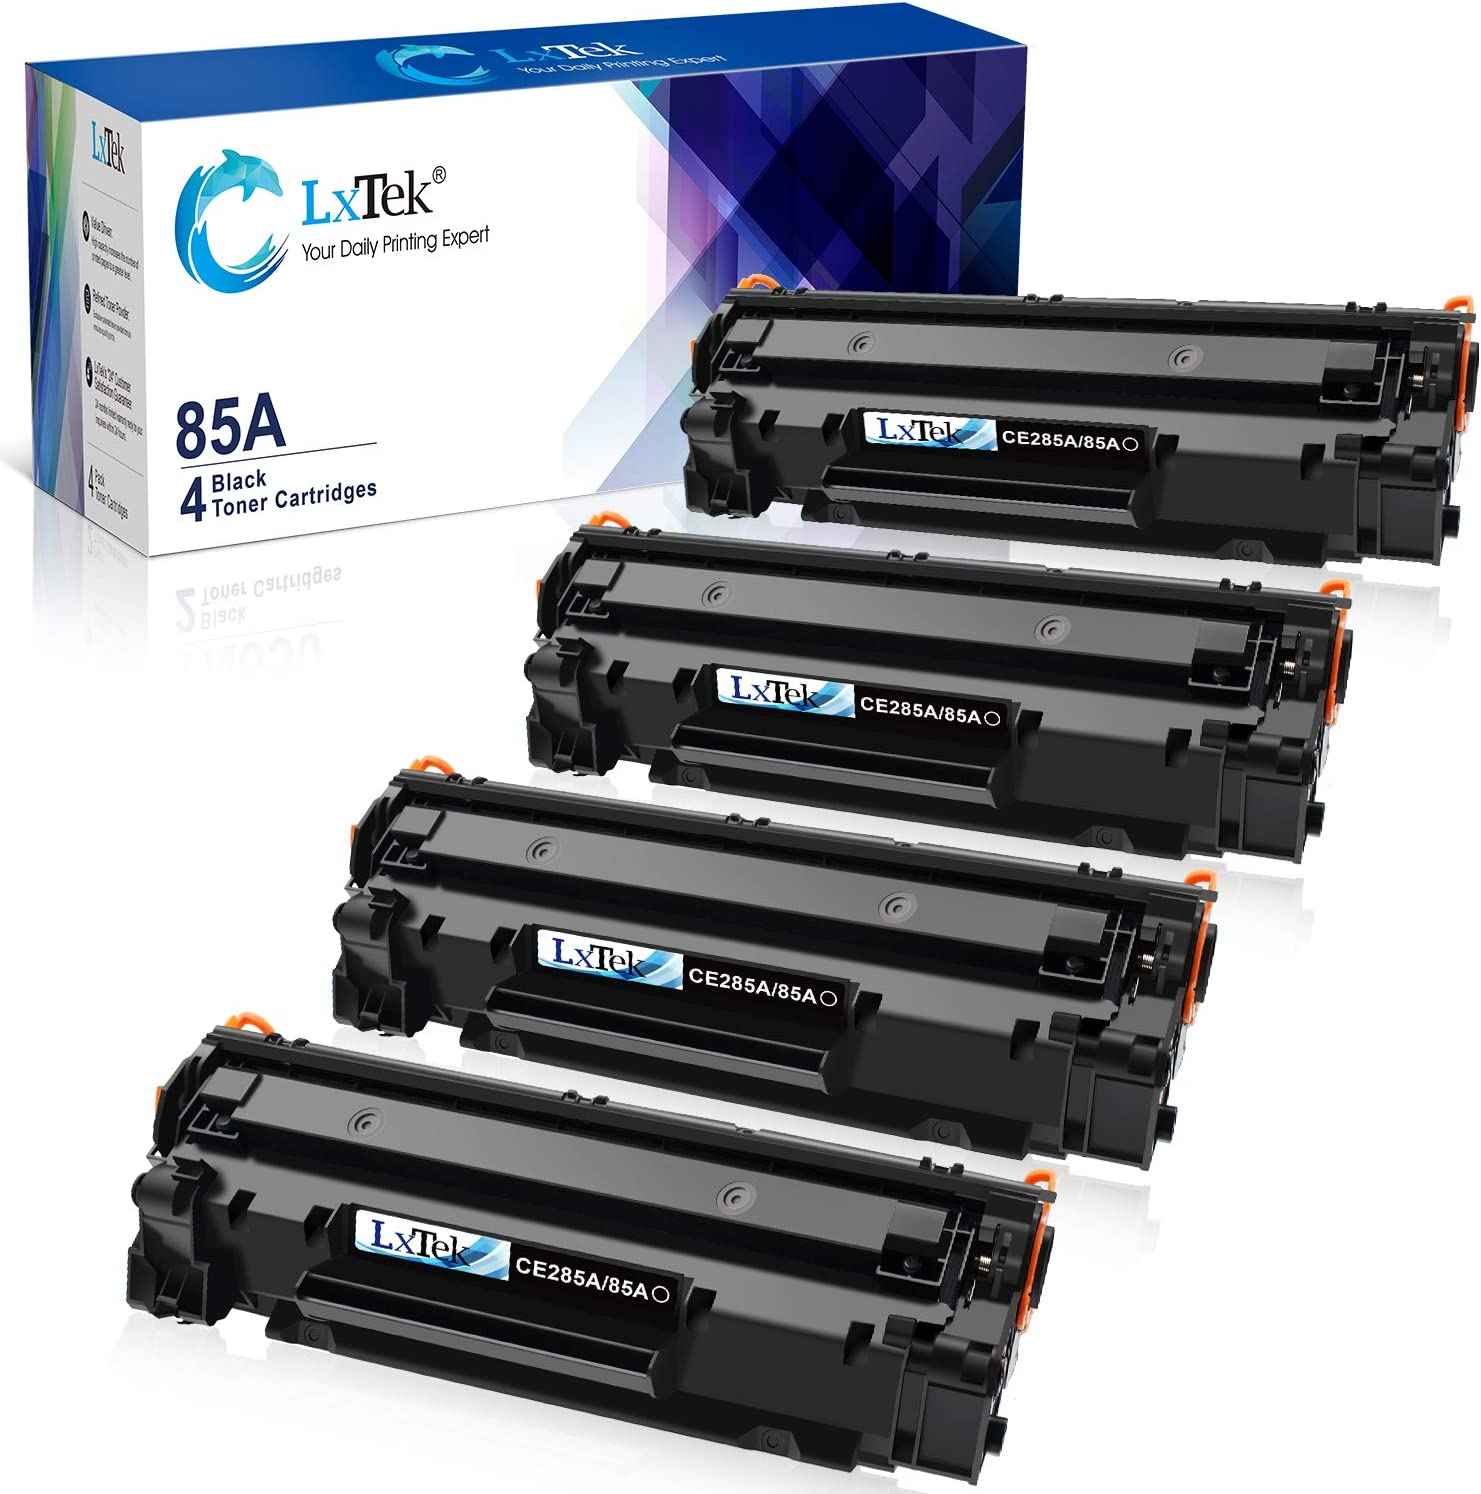 LxTek Compatible Toner Cartridge Replacement for HP 85A CE285A to use with Laserjet Pro P1102W Pro P1109W M1212NF M1217NFW (Black, 4-Pack)